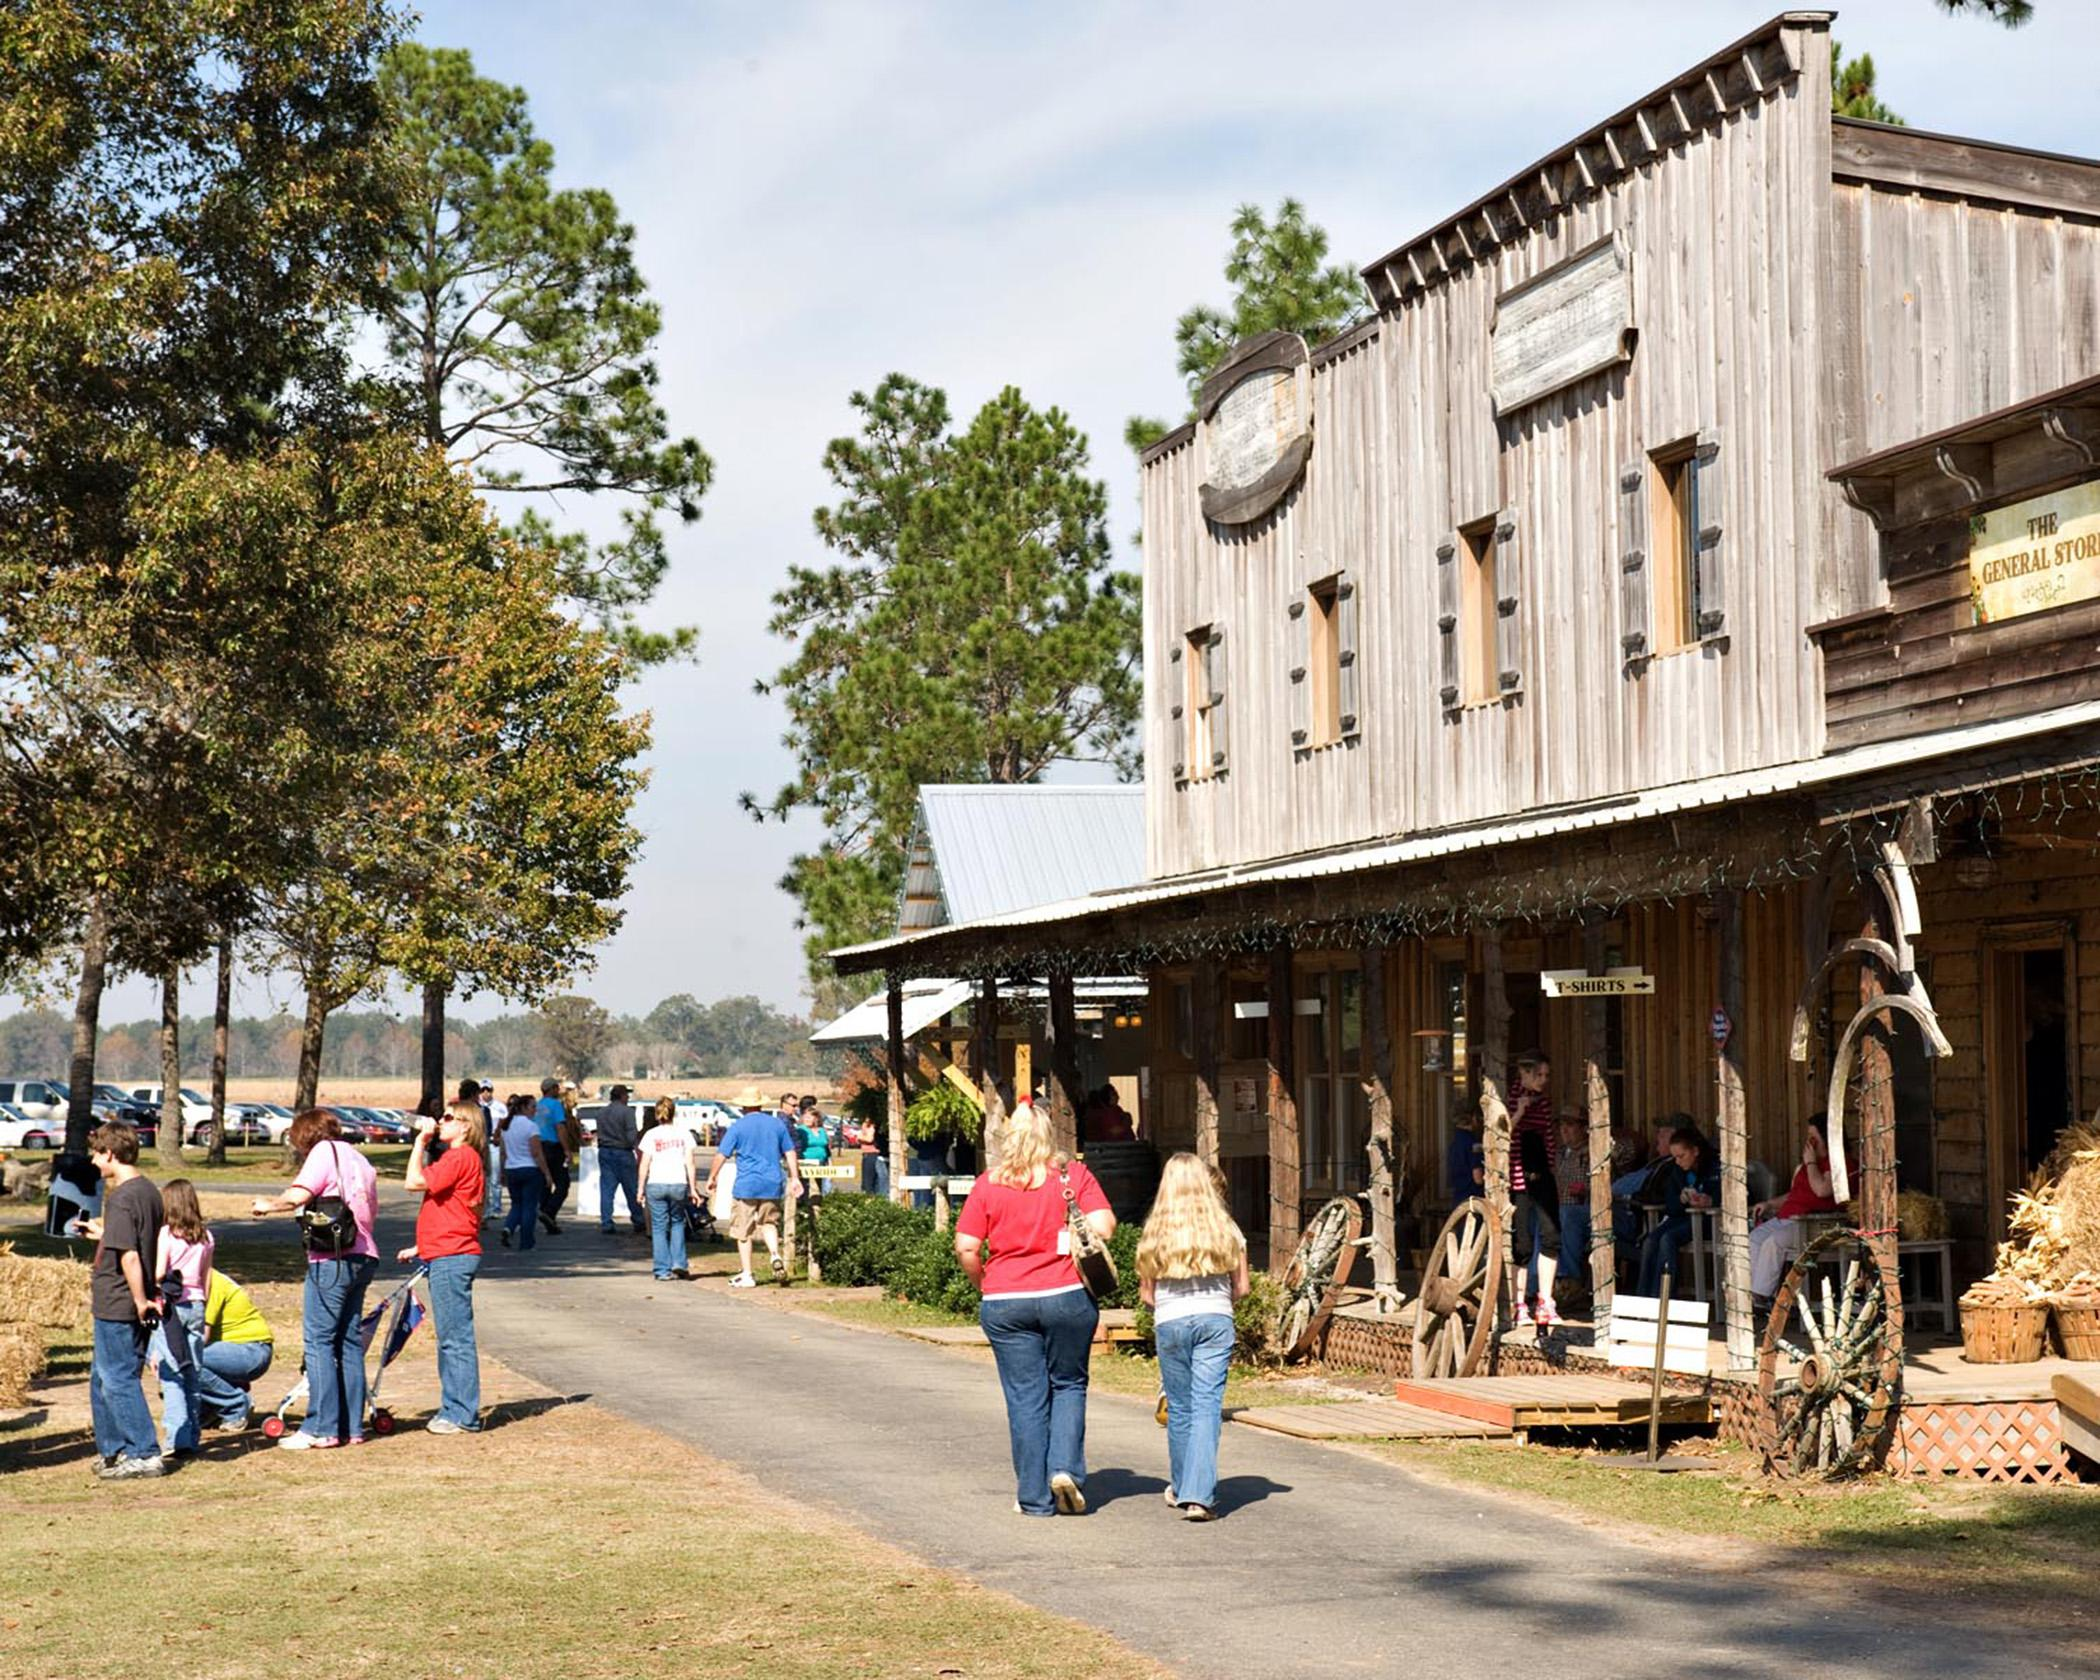 Agritourism is increasing in popularity as Mississippi farmers and landowners look for ways to diversify income and share their passion for agriculture. One such business, Bluejack Ridge Kids Ranch near Poplarville, Miss., offers Western-themed fun on weekends in October with activities such as a corn maze, petting farm, wagon train and zip line. (Submitted Photo)